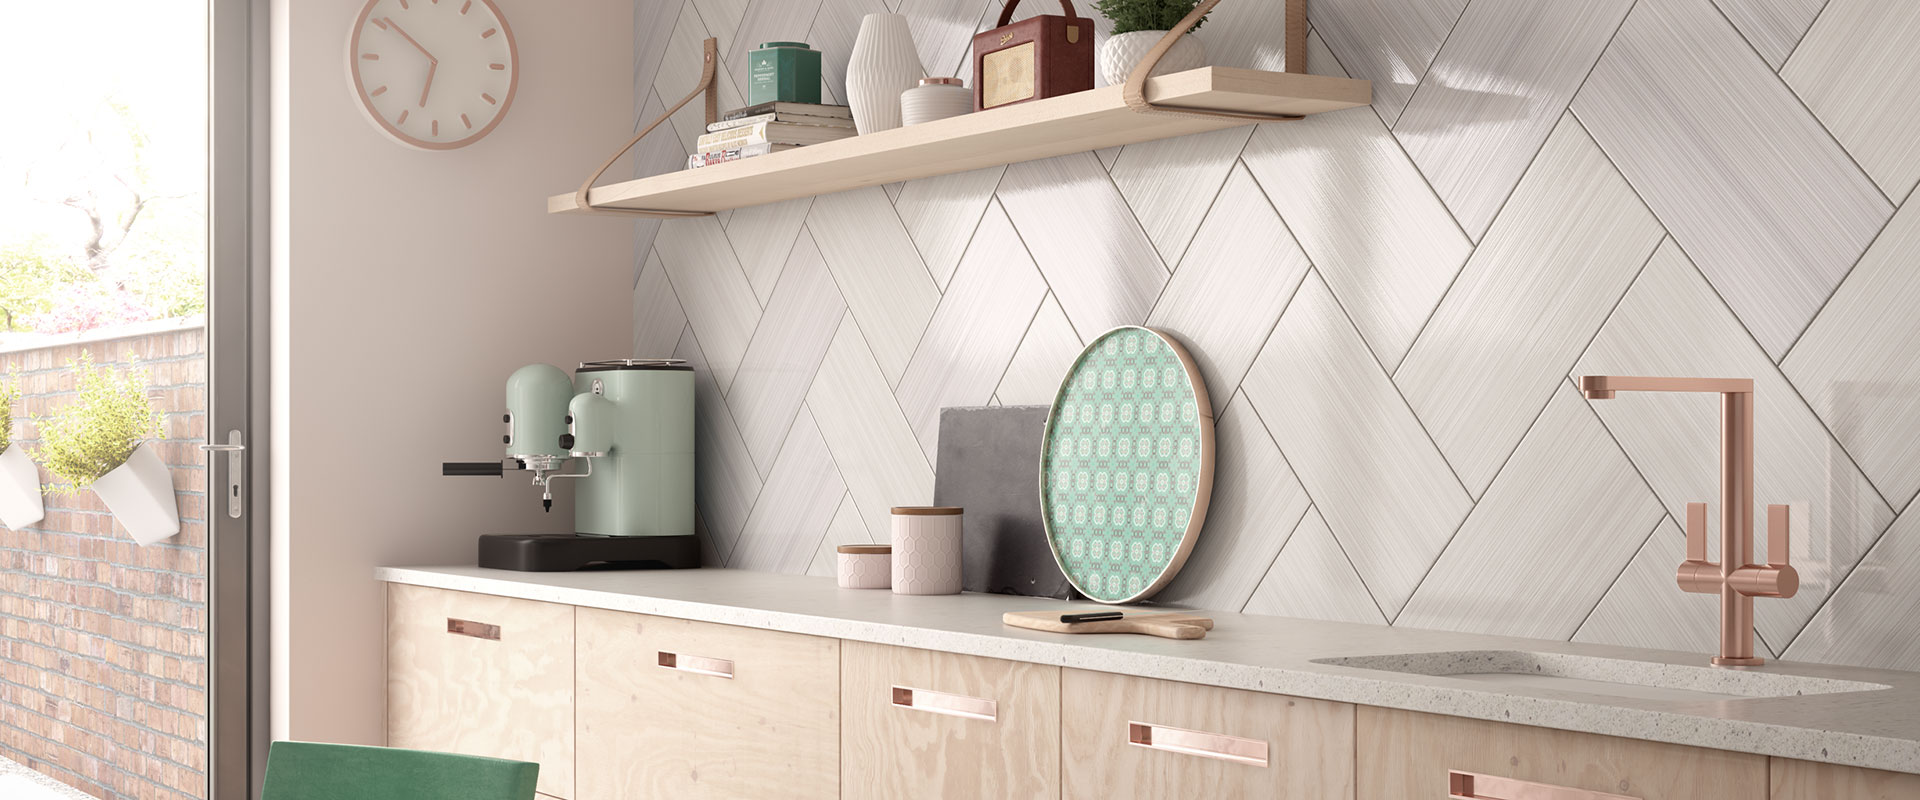 British ceramic tile buy wall floor tiles online dailygadgetfo Image collections